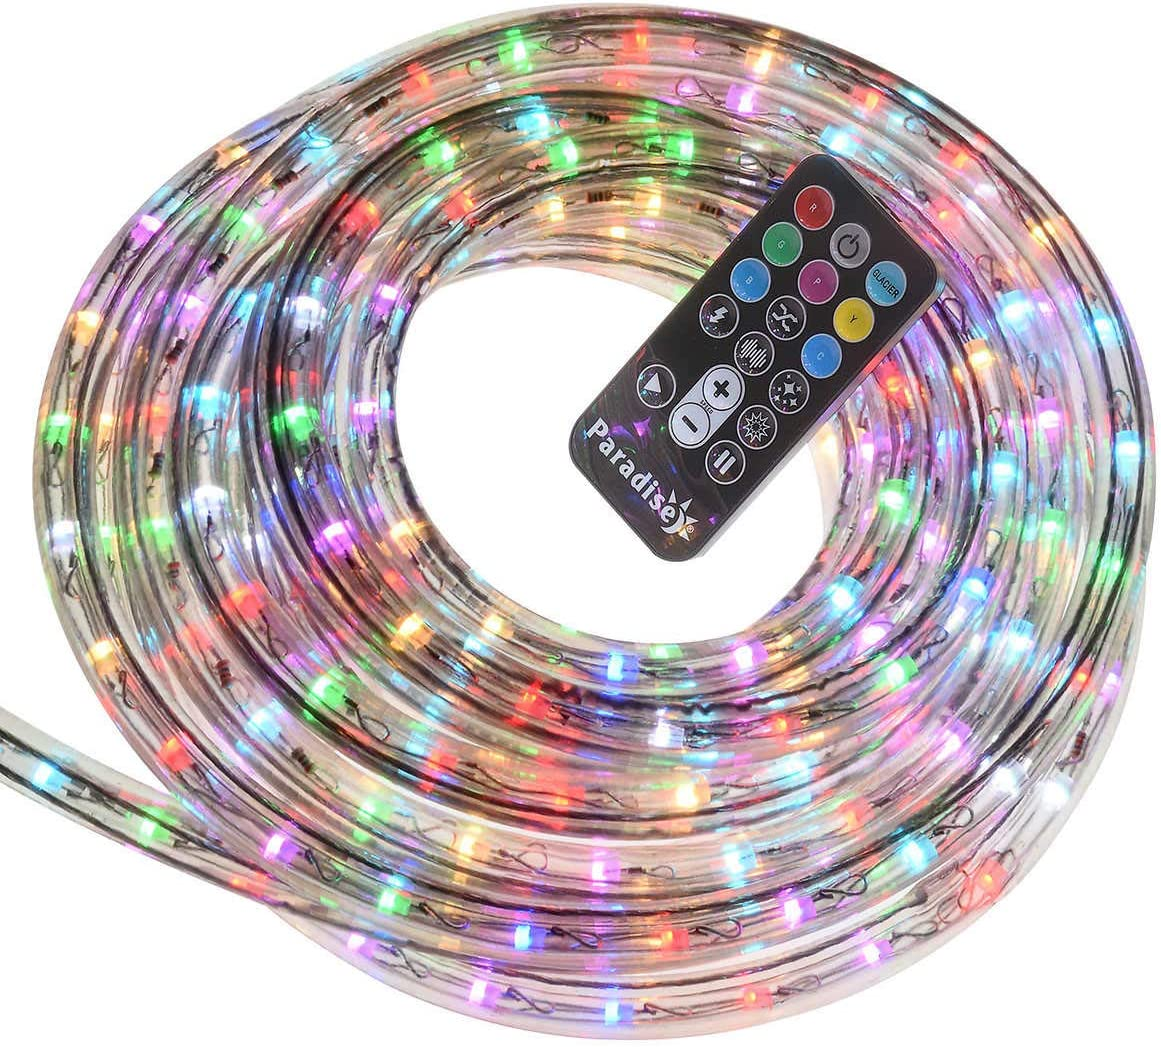 Paradise LED Rope Light 18 Feet Indoor/Outdoor